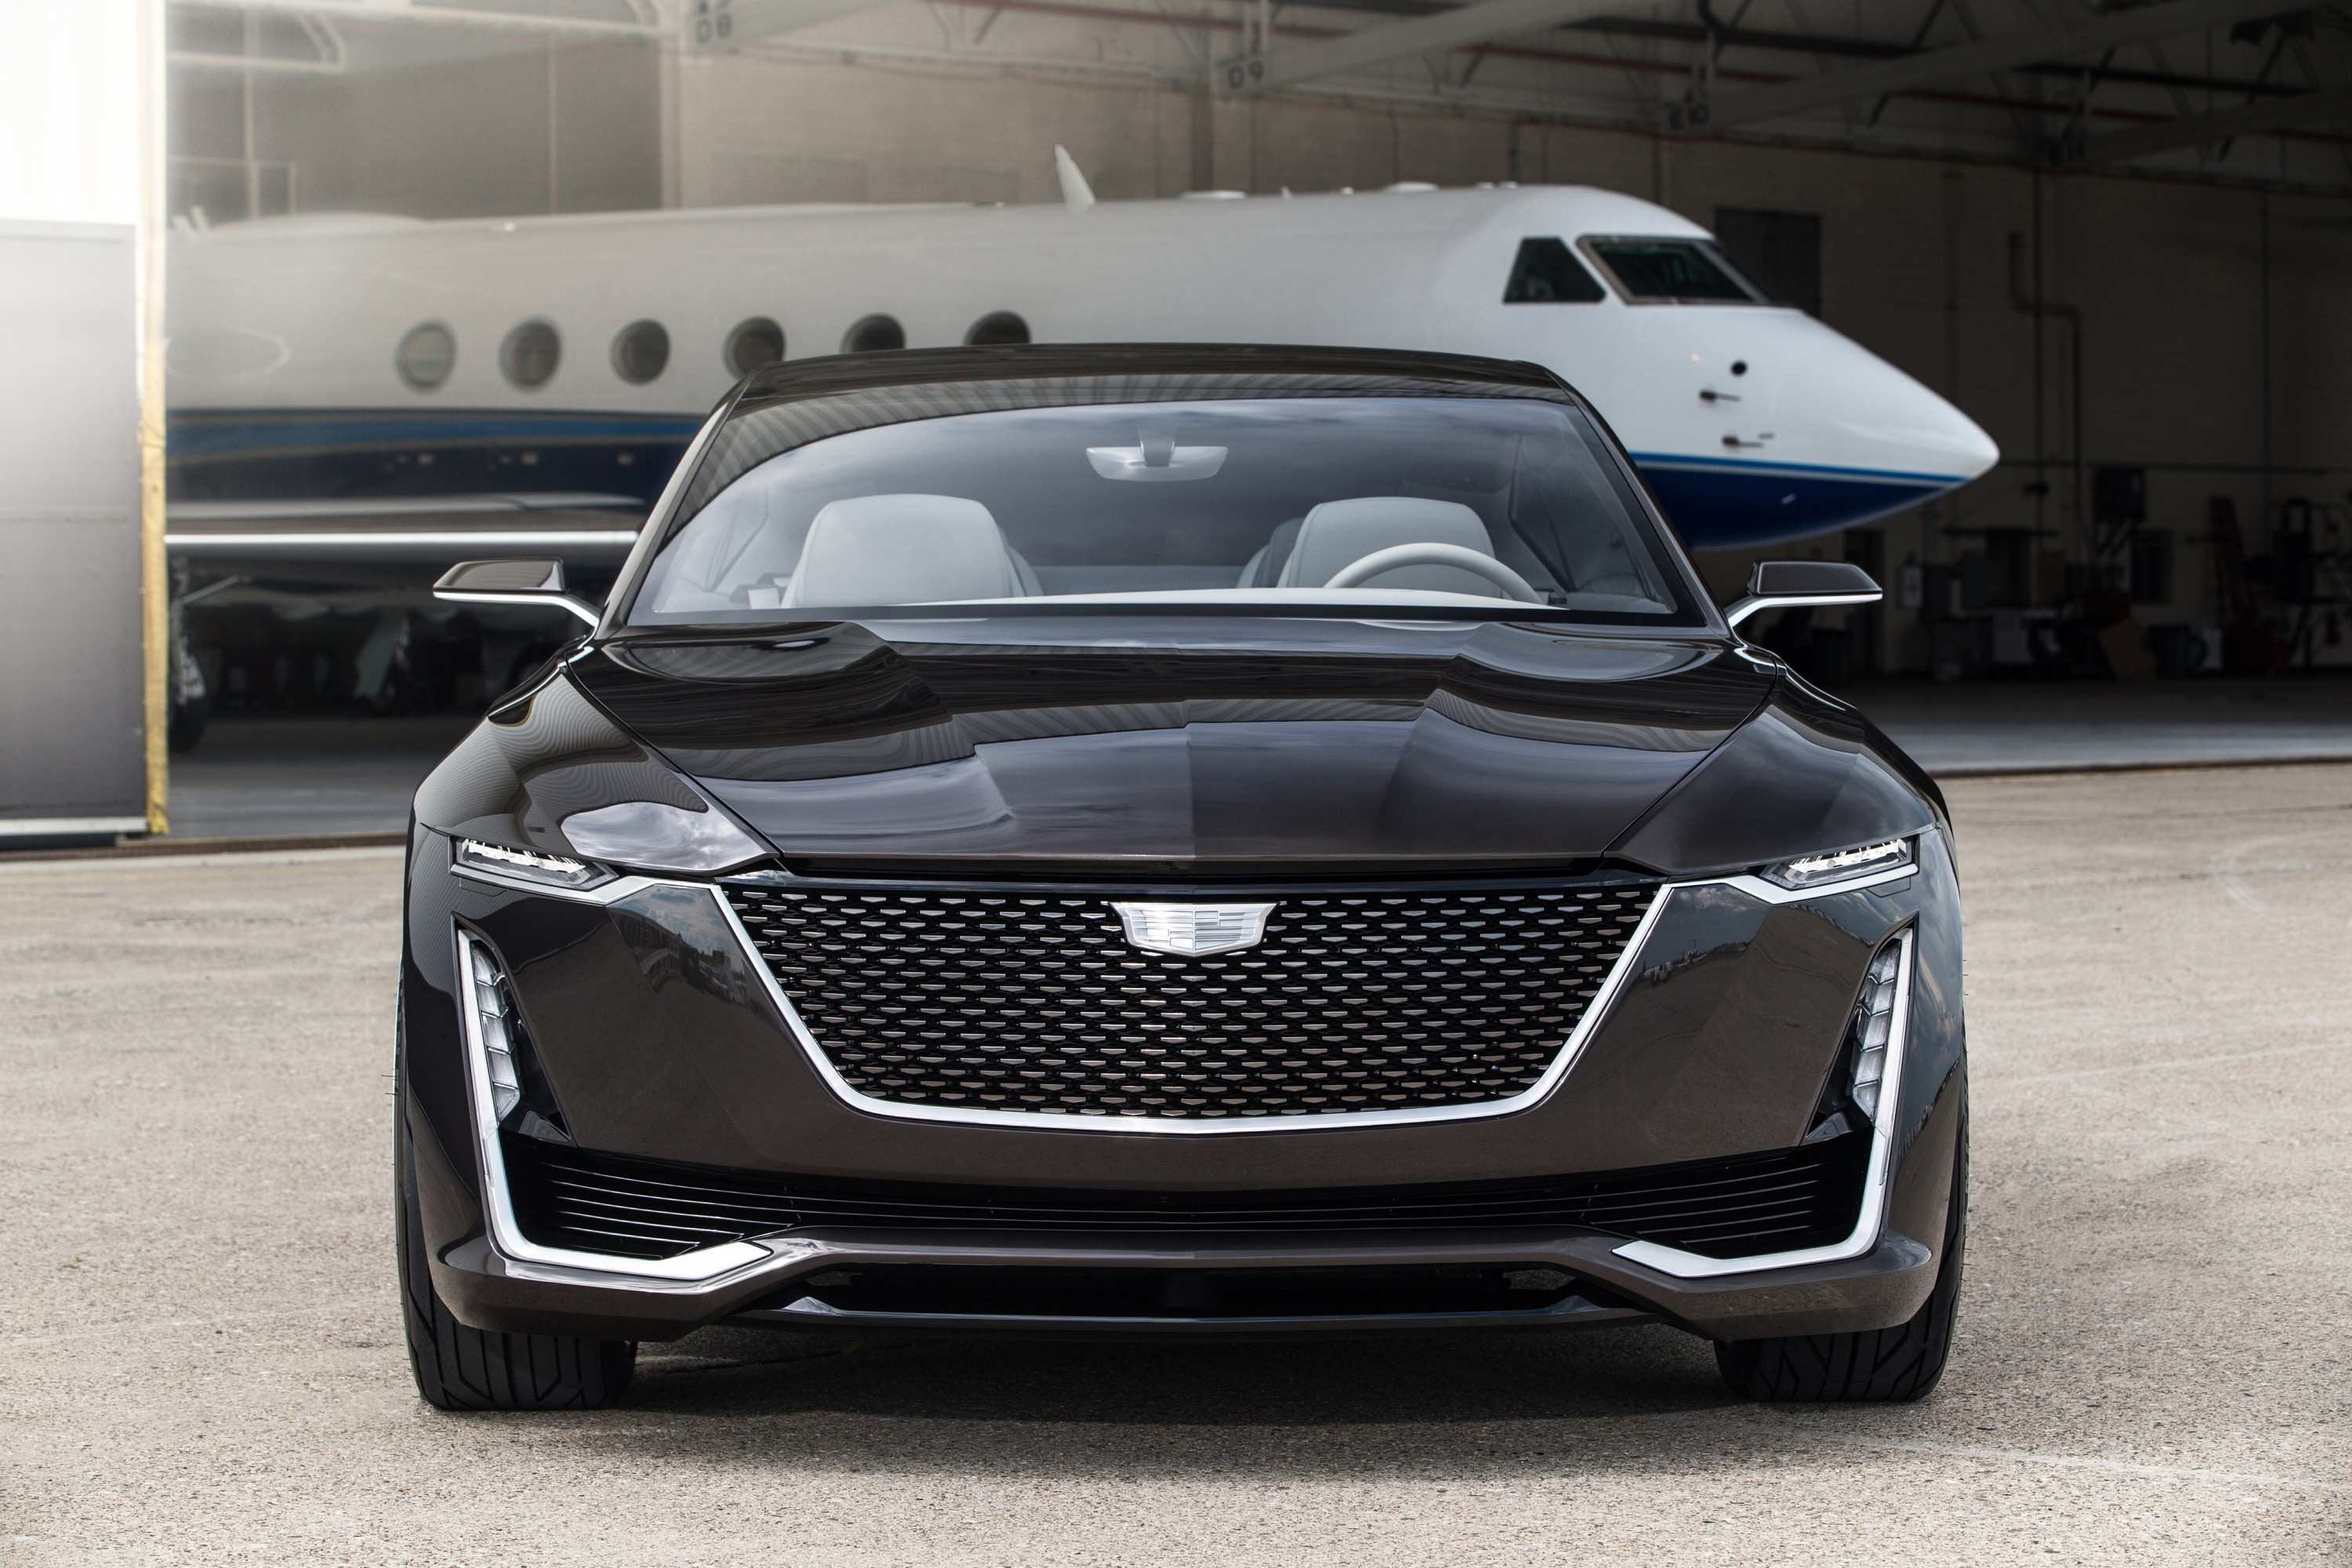 79 Best What Cars Will Cadillac Make In 2020 Images